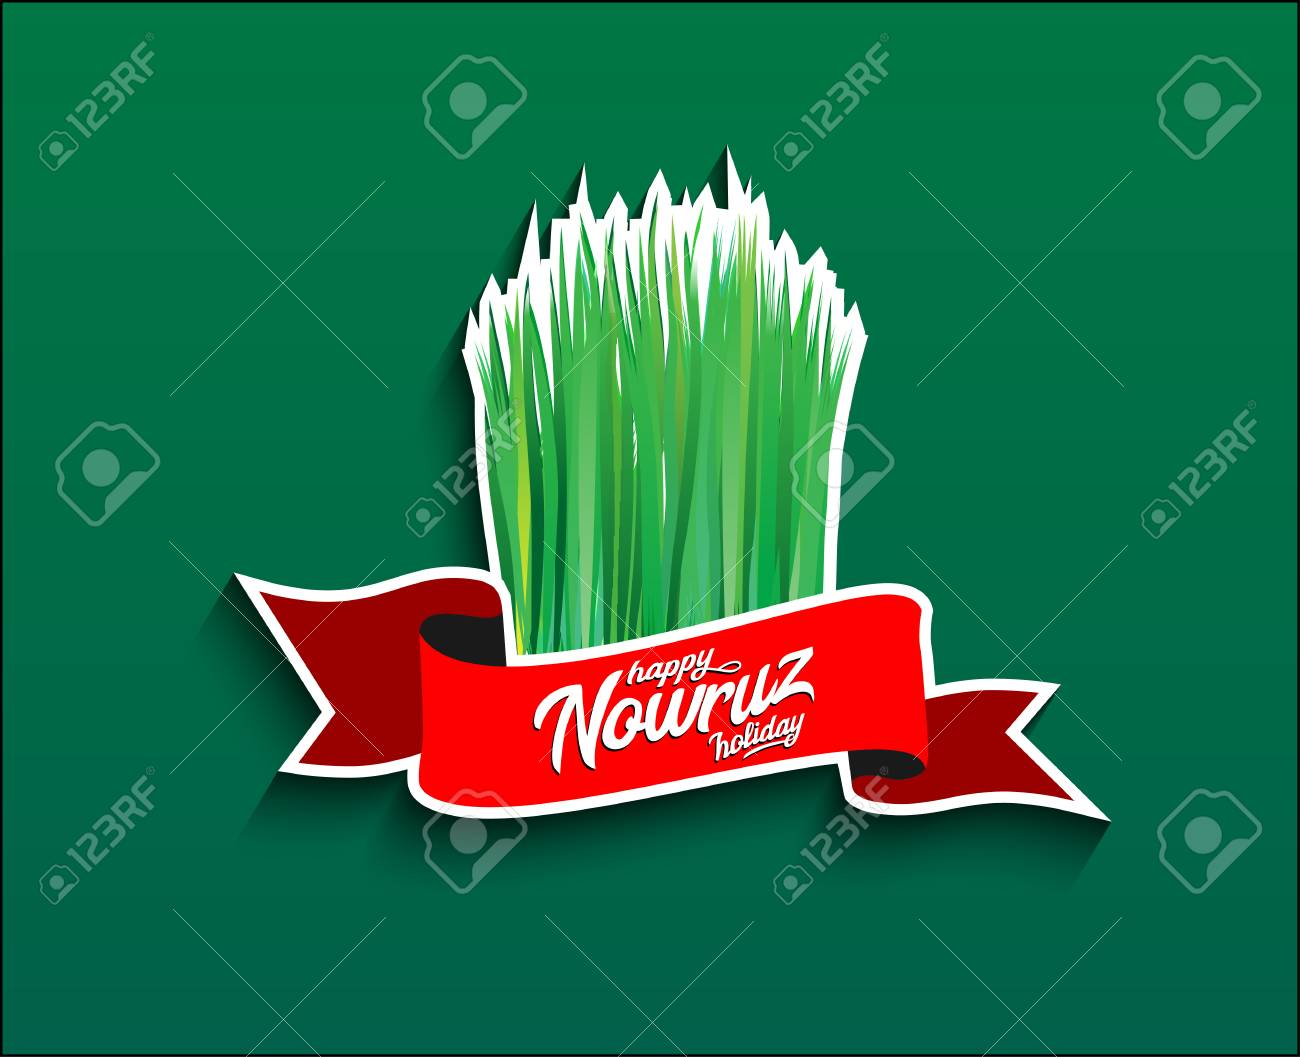 Holiday Nowruz Happy Nowruz With Grass Vector Illustration